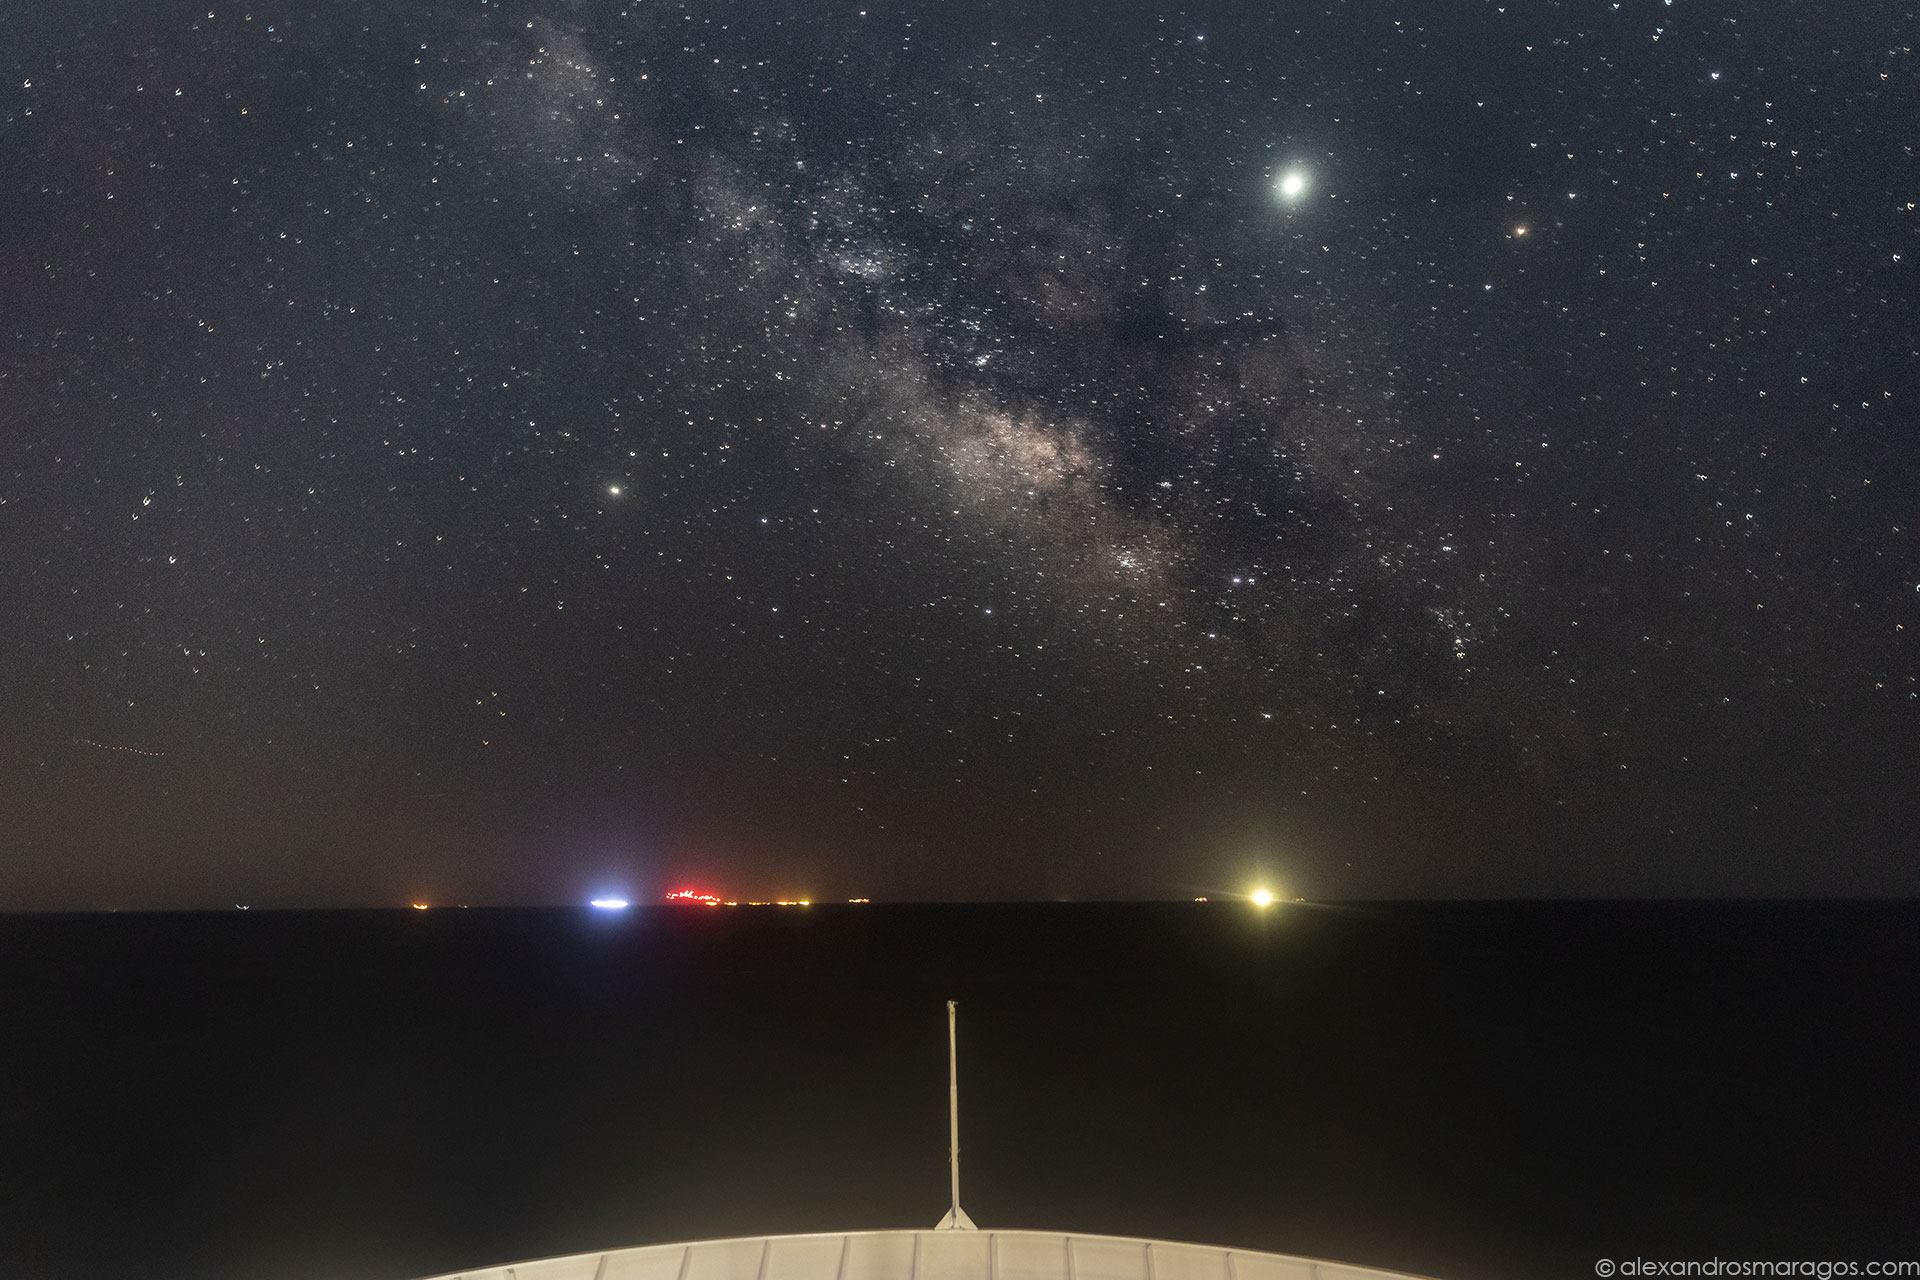 The Summer Milky Way over the Aegean Sea, Greece, Taken From a Moving Ship | © Alexandros Maragos